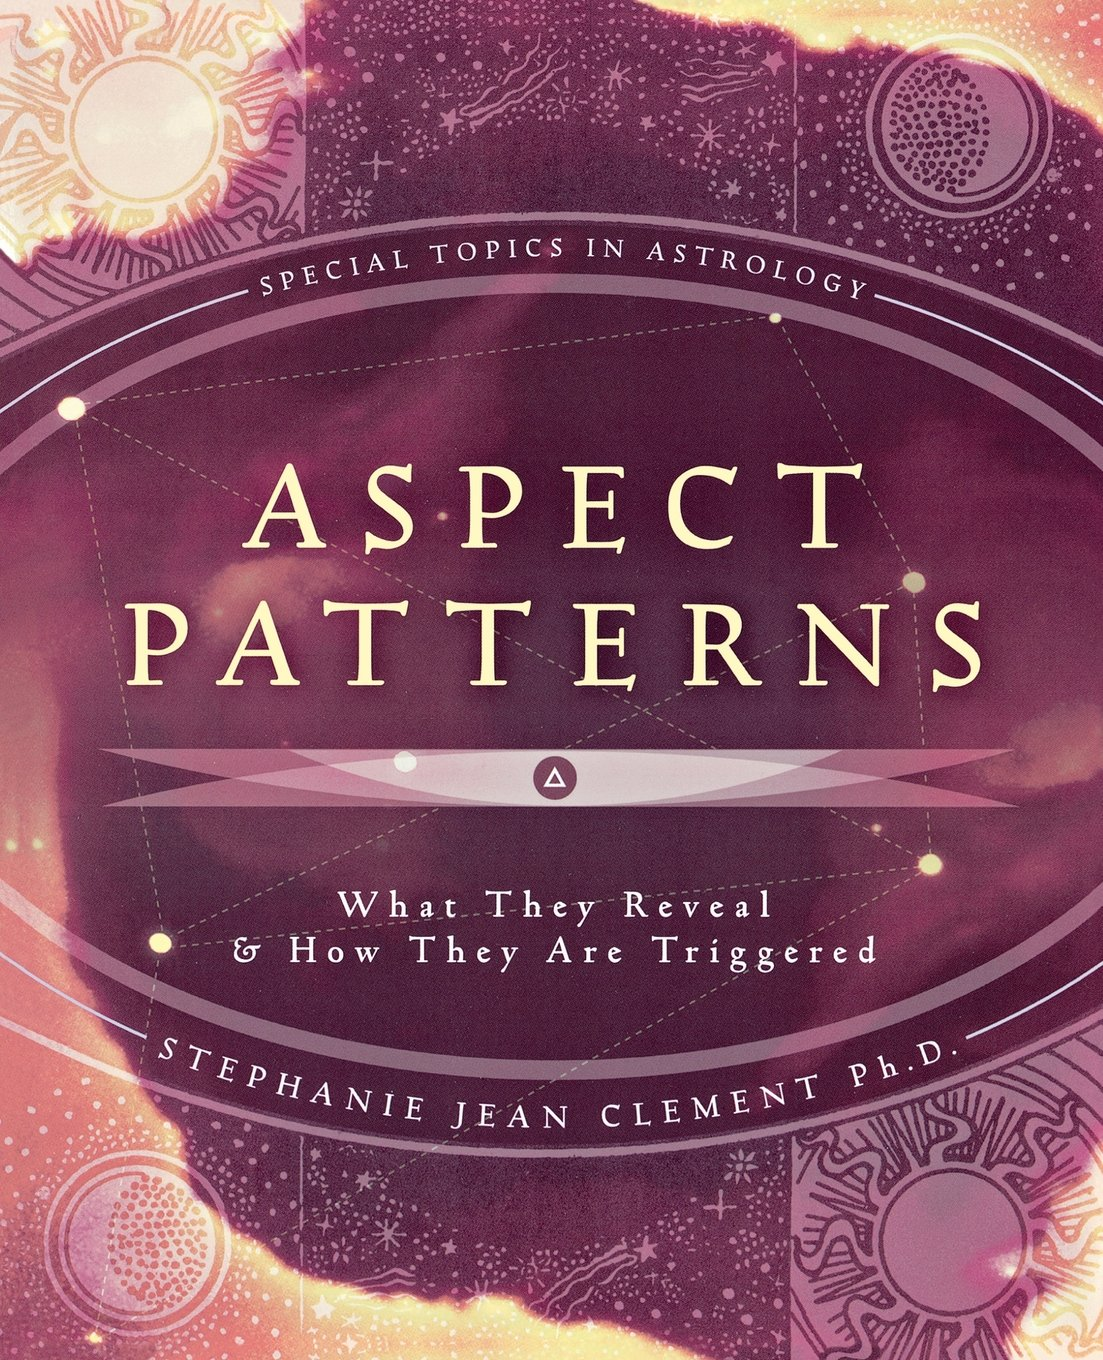 Aspect Patterns: What They Reveal & How They Are Triggered (Special Topics in Astrology Series) pdf epub